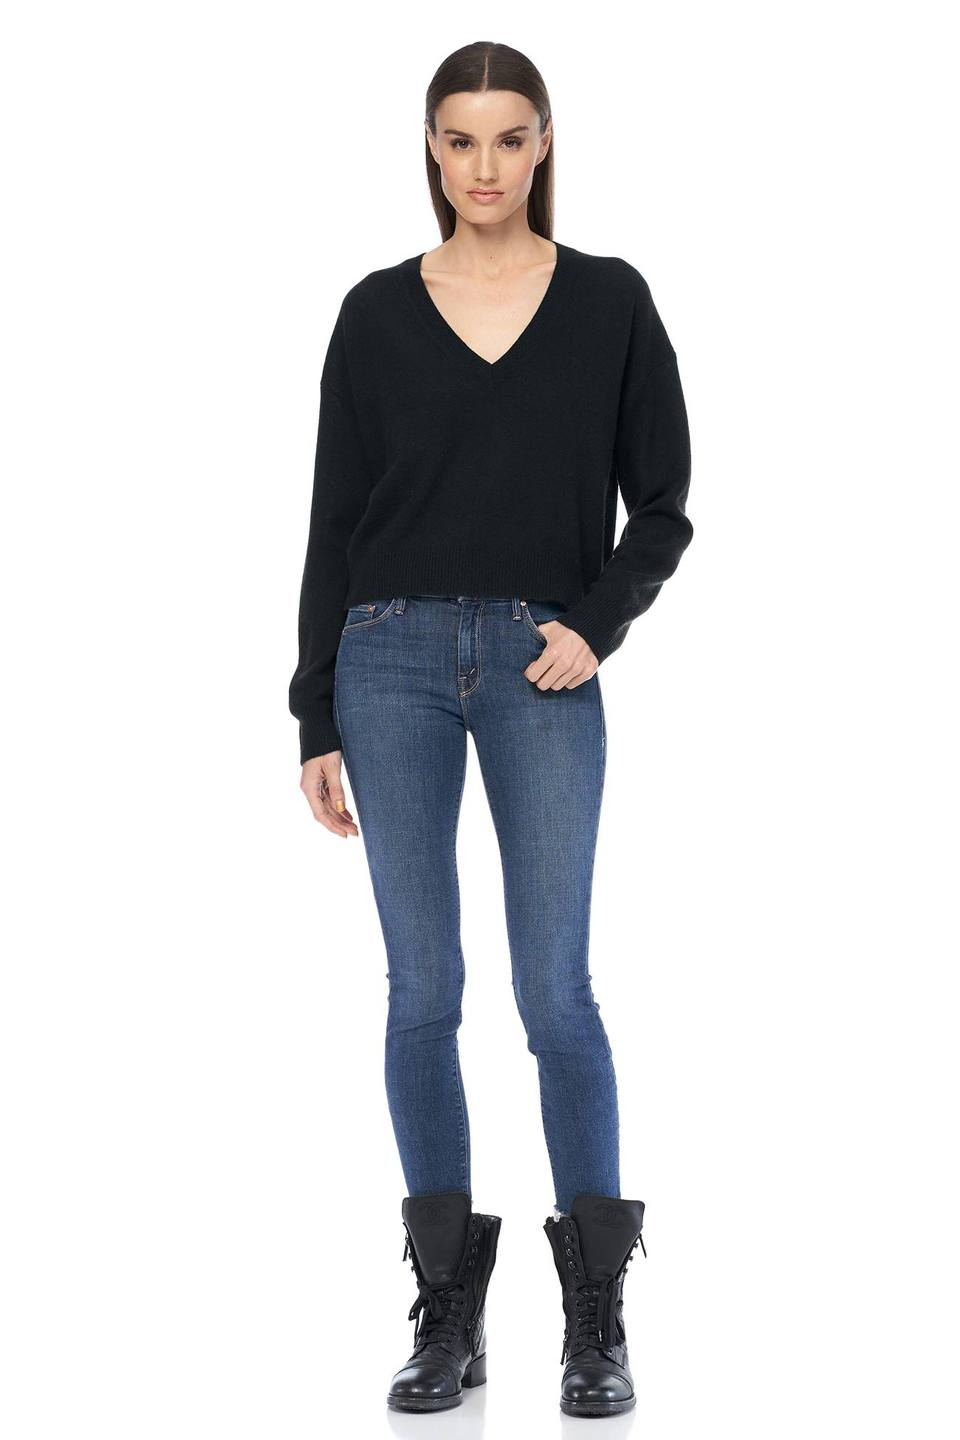 360 Cashmere - Niomi Sweater - Black